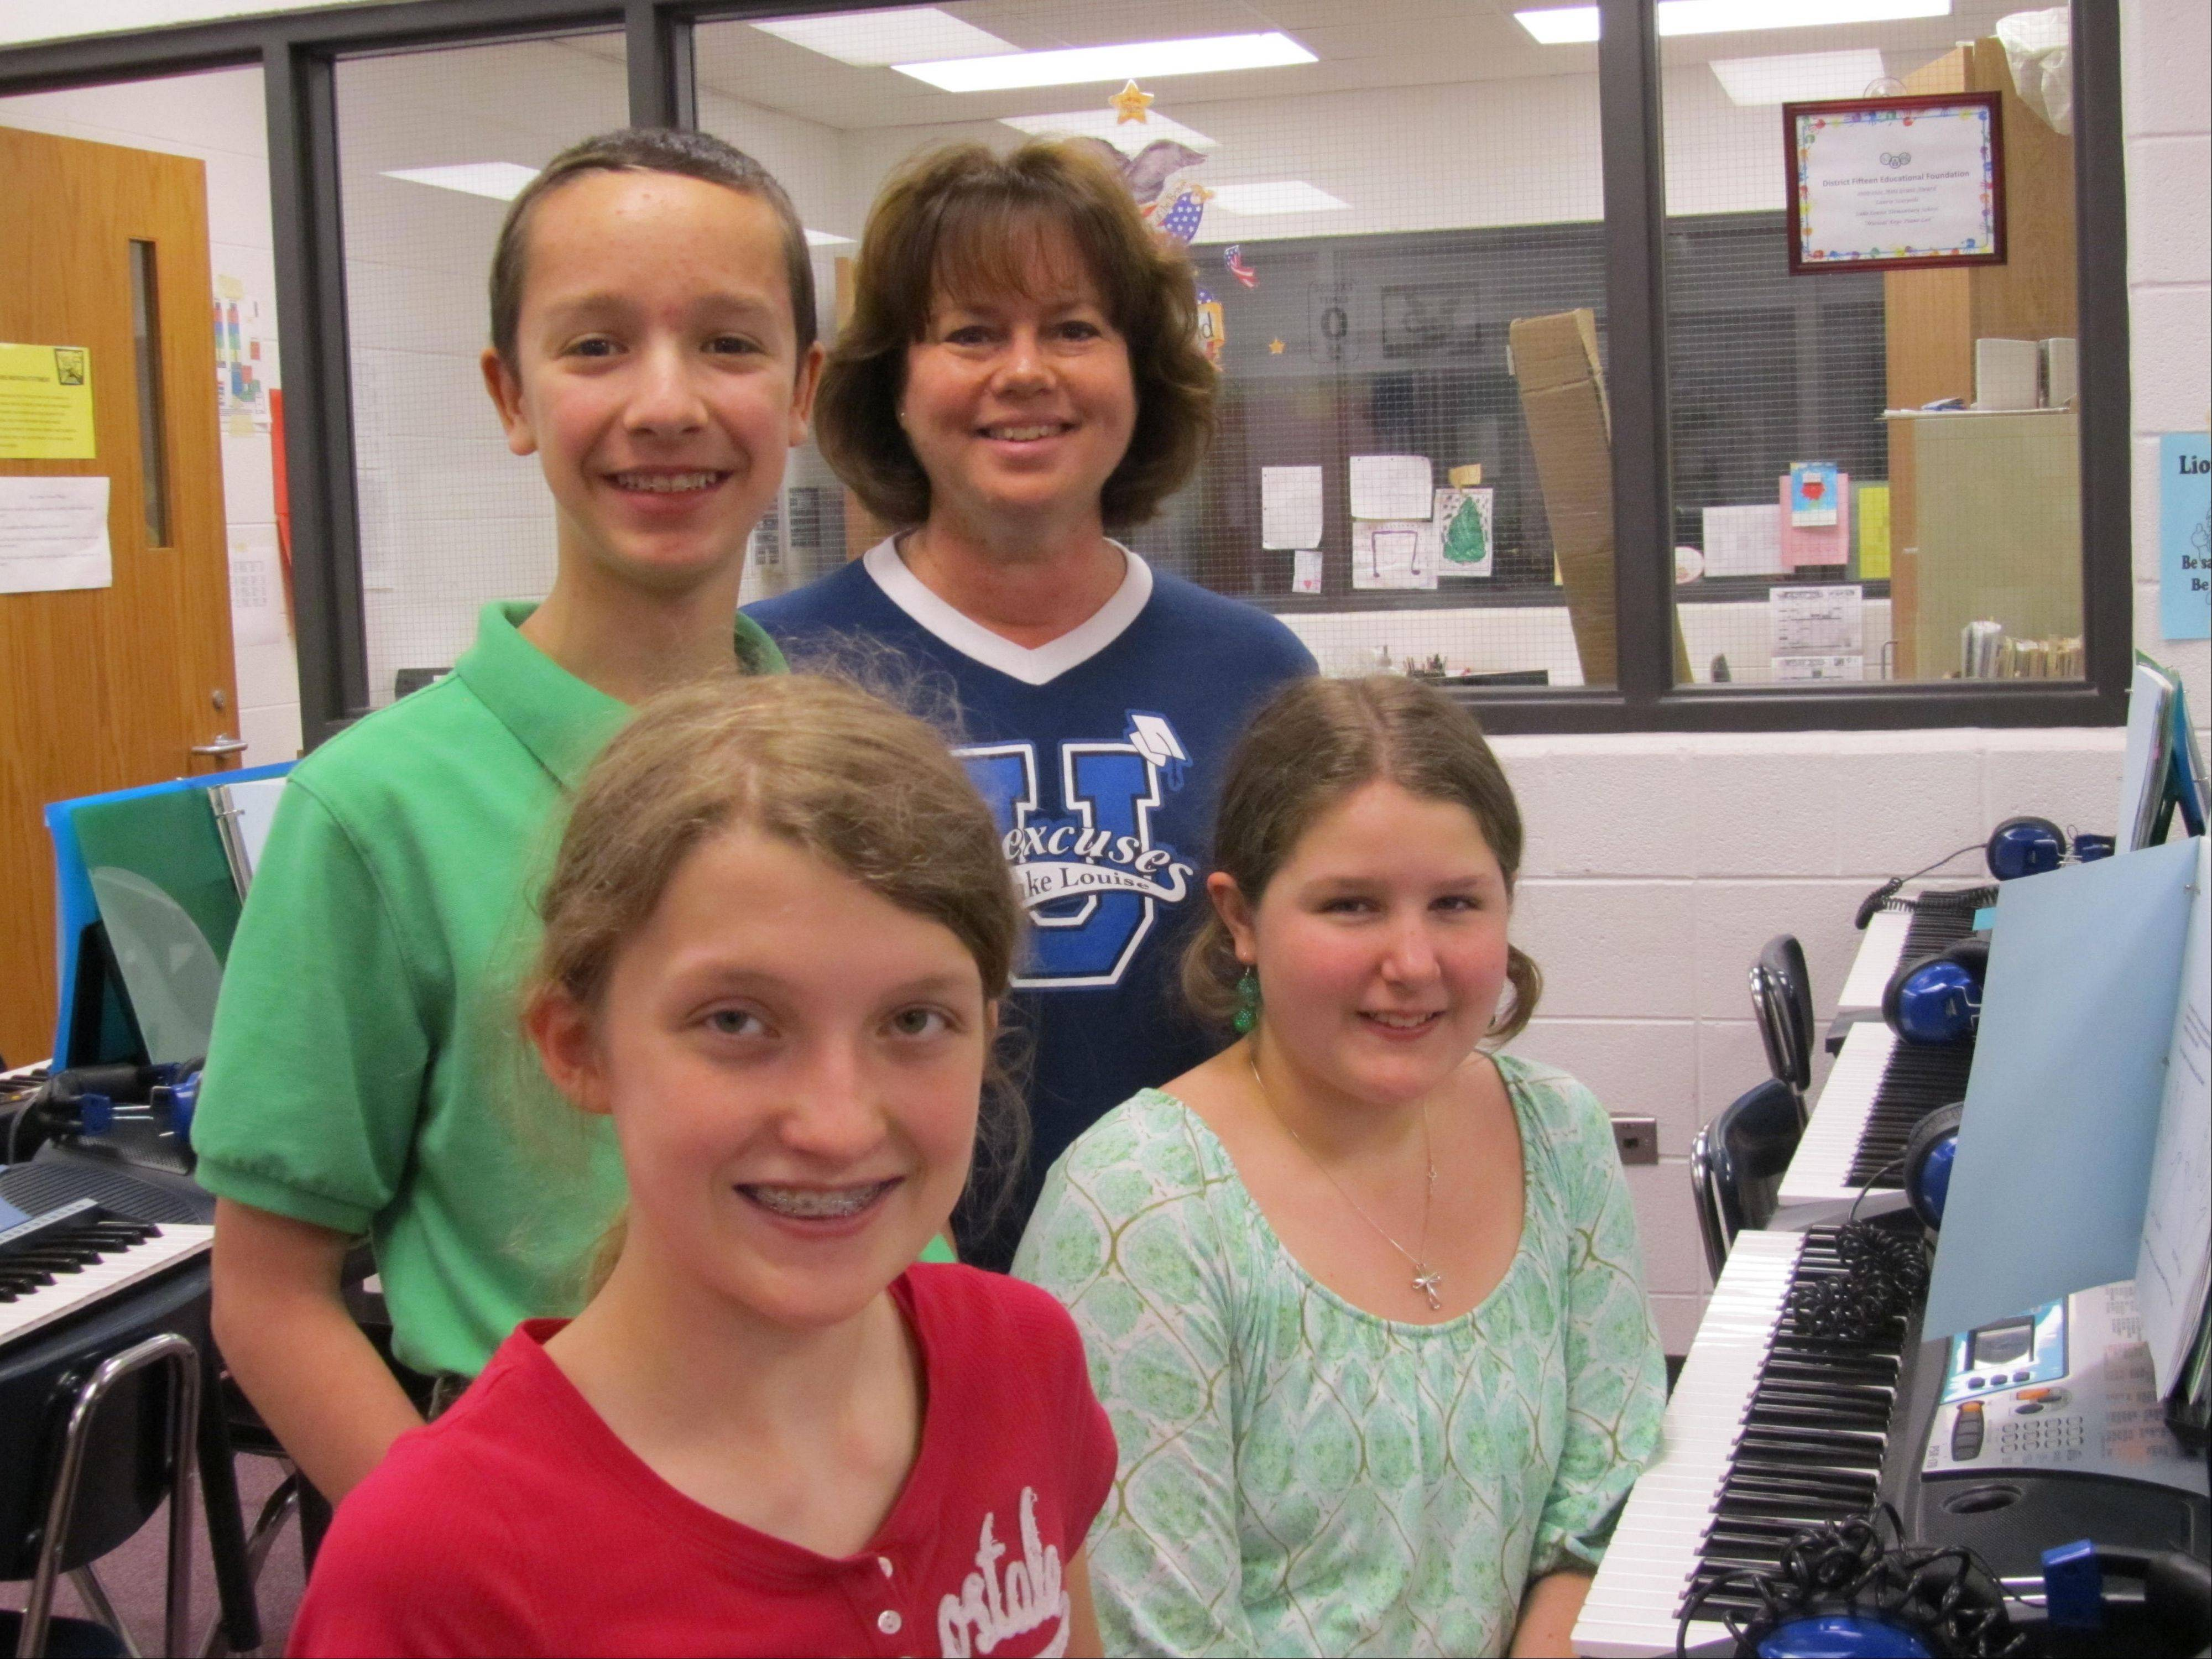 Lake Louise sixth-graders Kyle Cyr-Flessner, left, Haley Holz, Katie Barclay, with music teacher Laurie Scarpelli will demonstrate how technology is being used in the classroom to improve student achievement at the TECH 2013: Students for the Information Age event Tuesday, May 7, in Springfield.